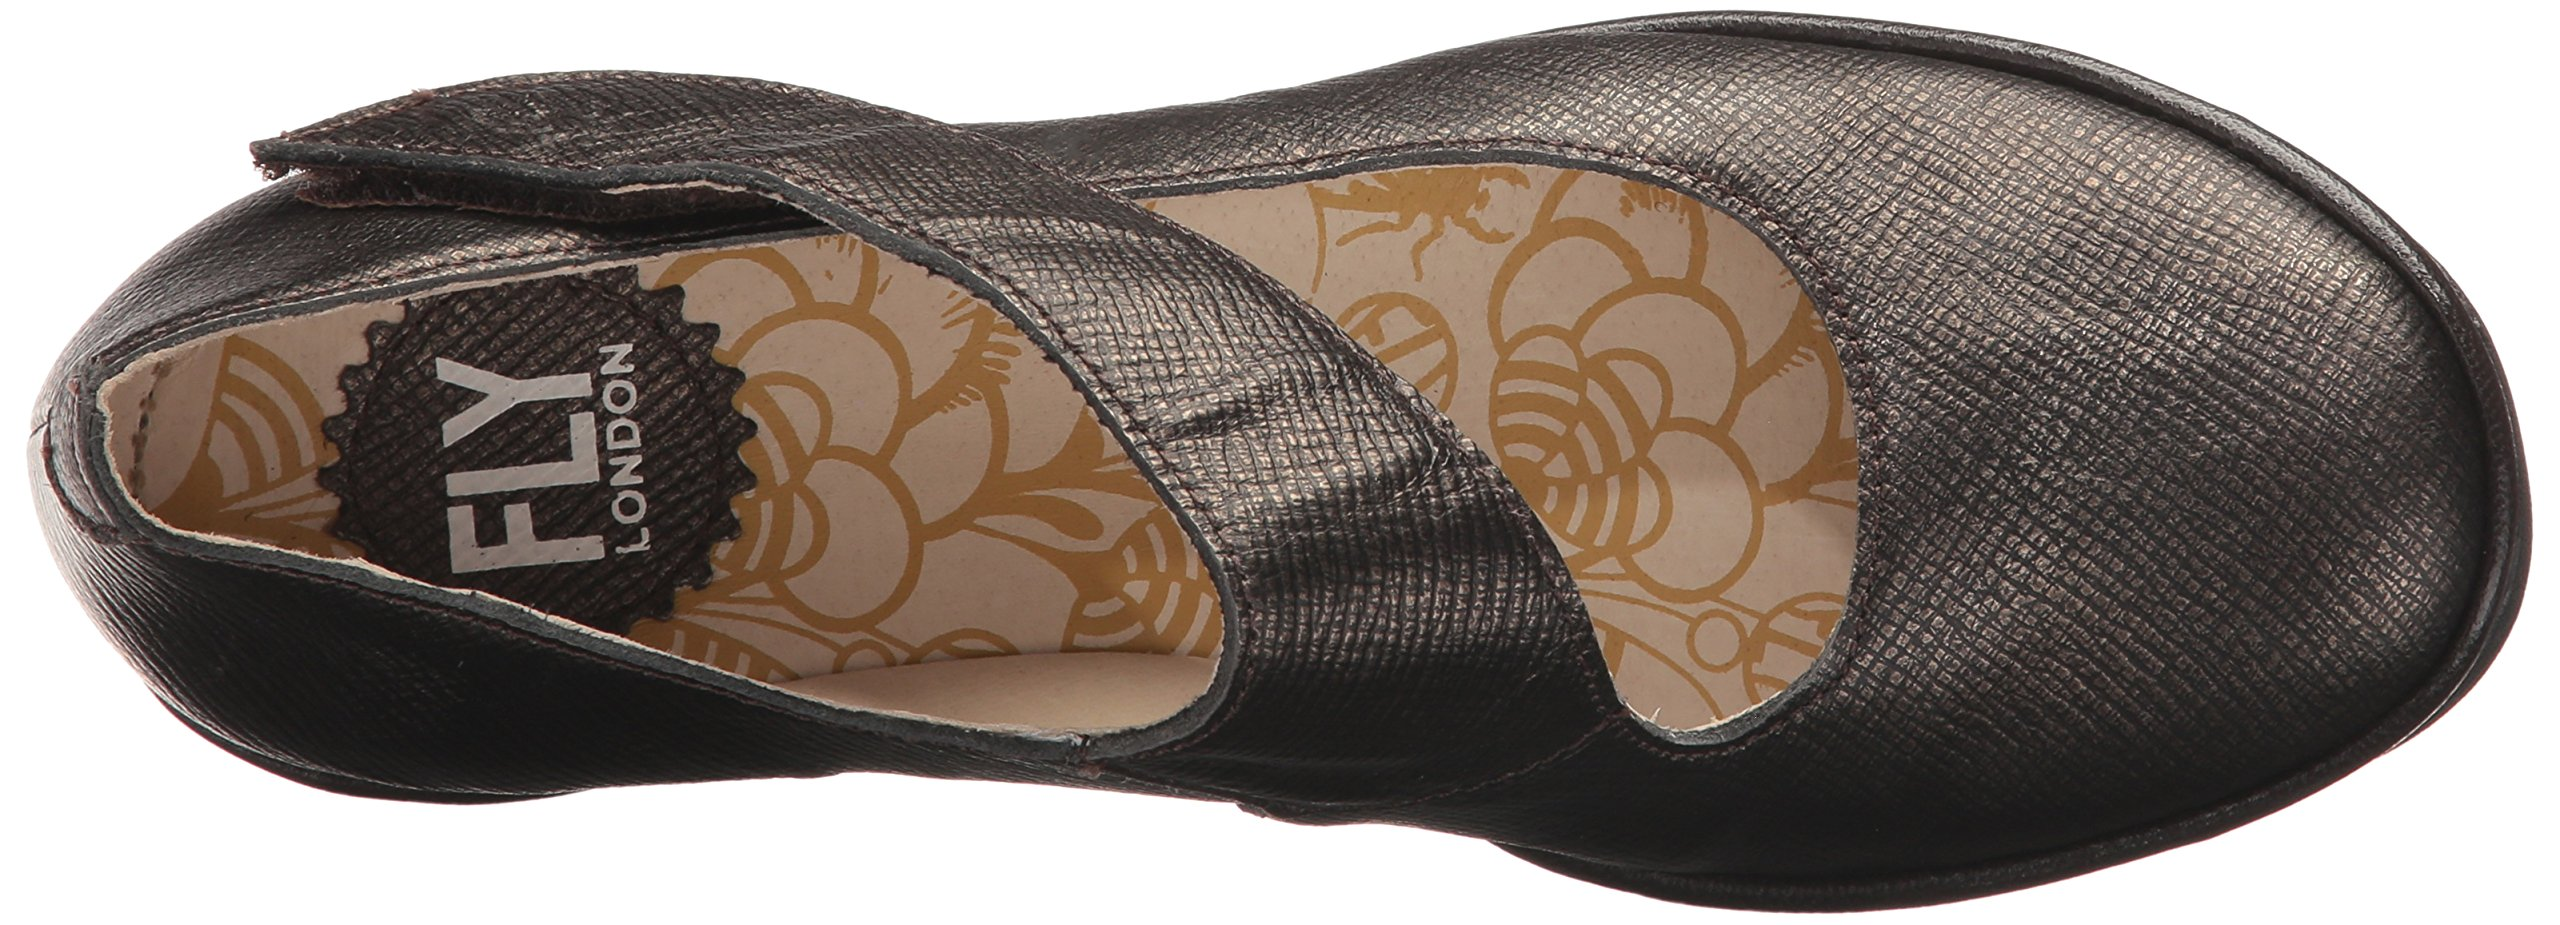 FLY London Women's YASI682FLY Pump, Bronze/Chocolate Franz/Mousse, 39 M EU (8-8.5 US) by FLY London (Image #8)